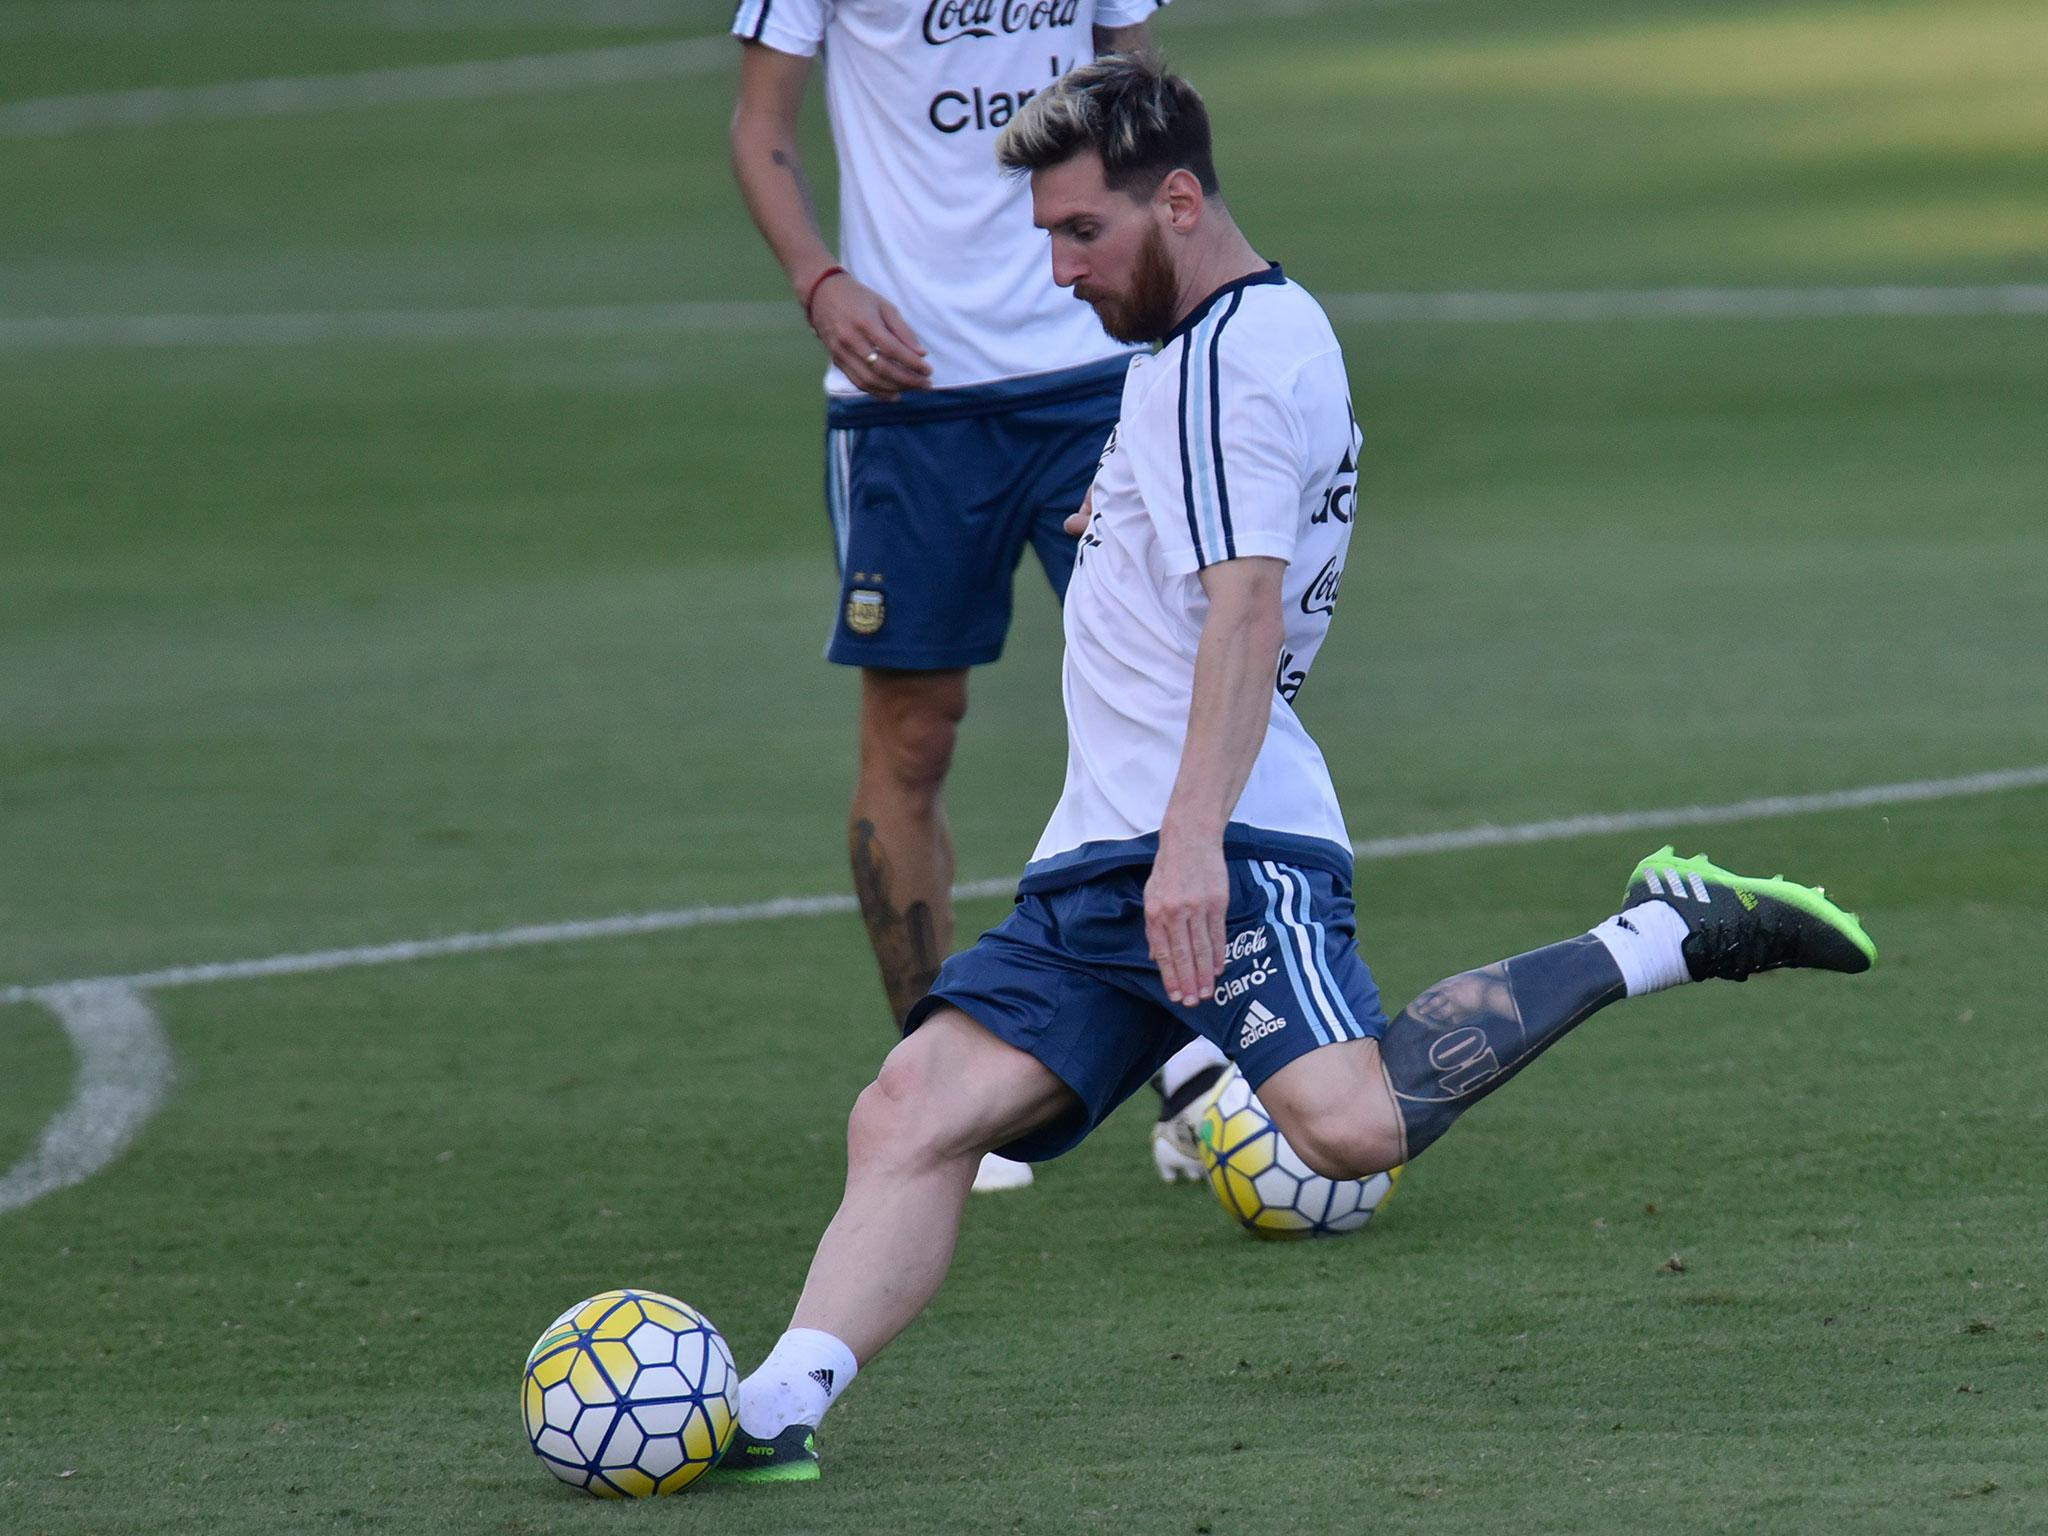 Messi S Tattoos: Lionel Messi Shows Off Weird New Tattoo During Argentina